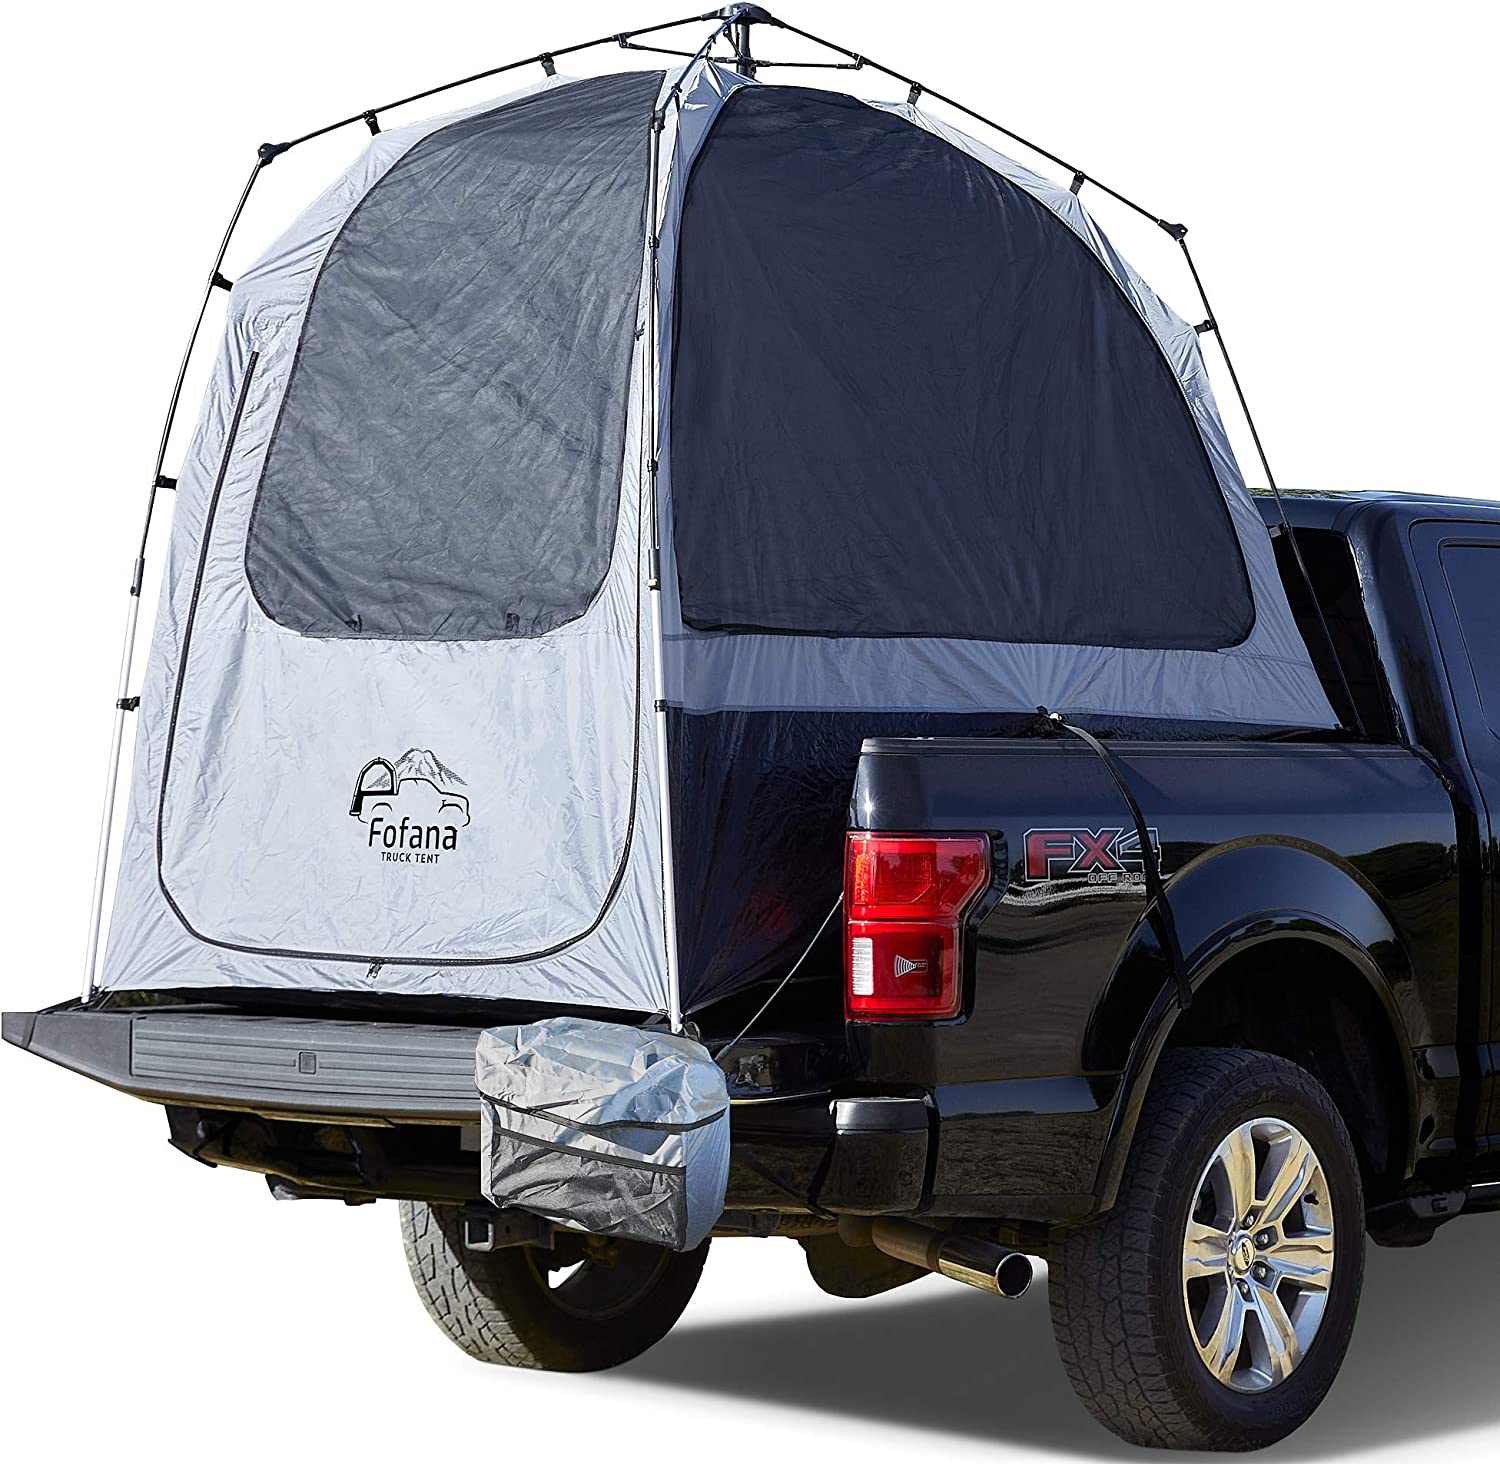 Truck Bed Tent Sale item Automatic Setup with Size Te Mid Boot Bag - Portland Mall